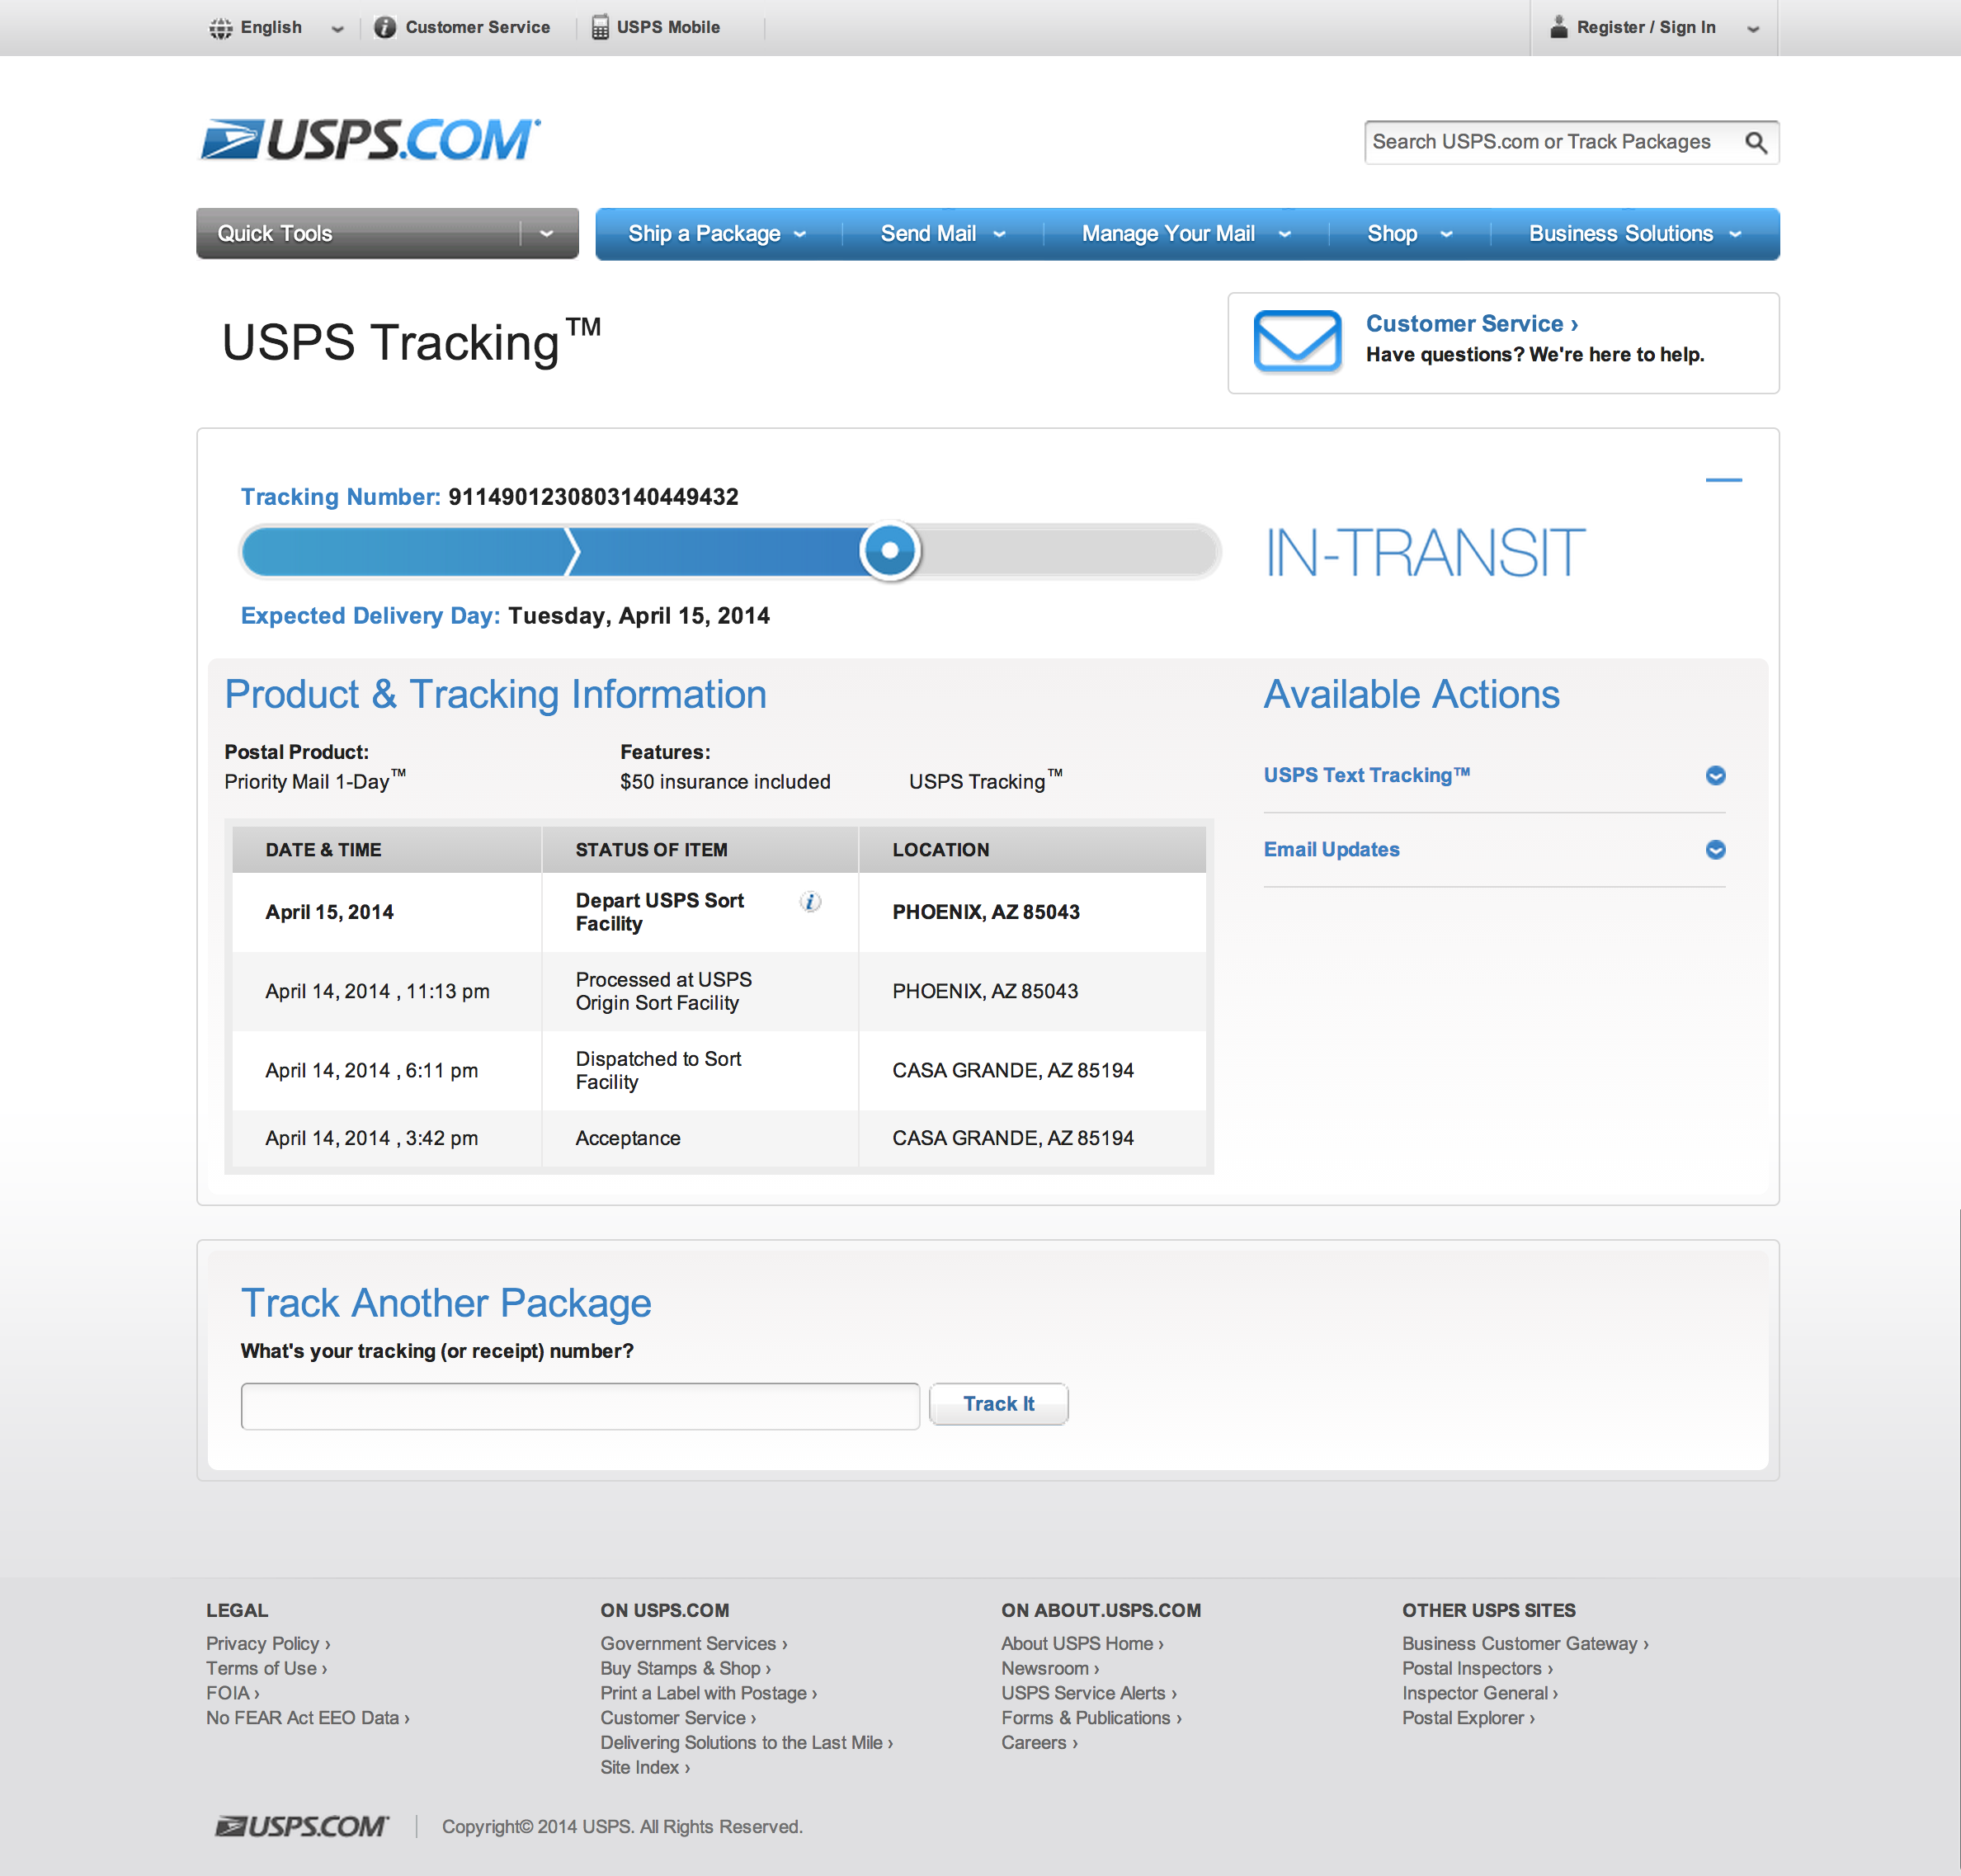 USPS tracking on April 15